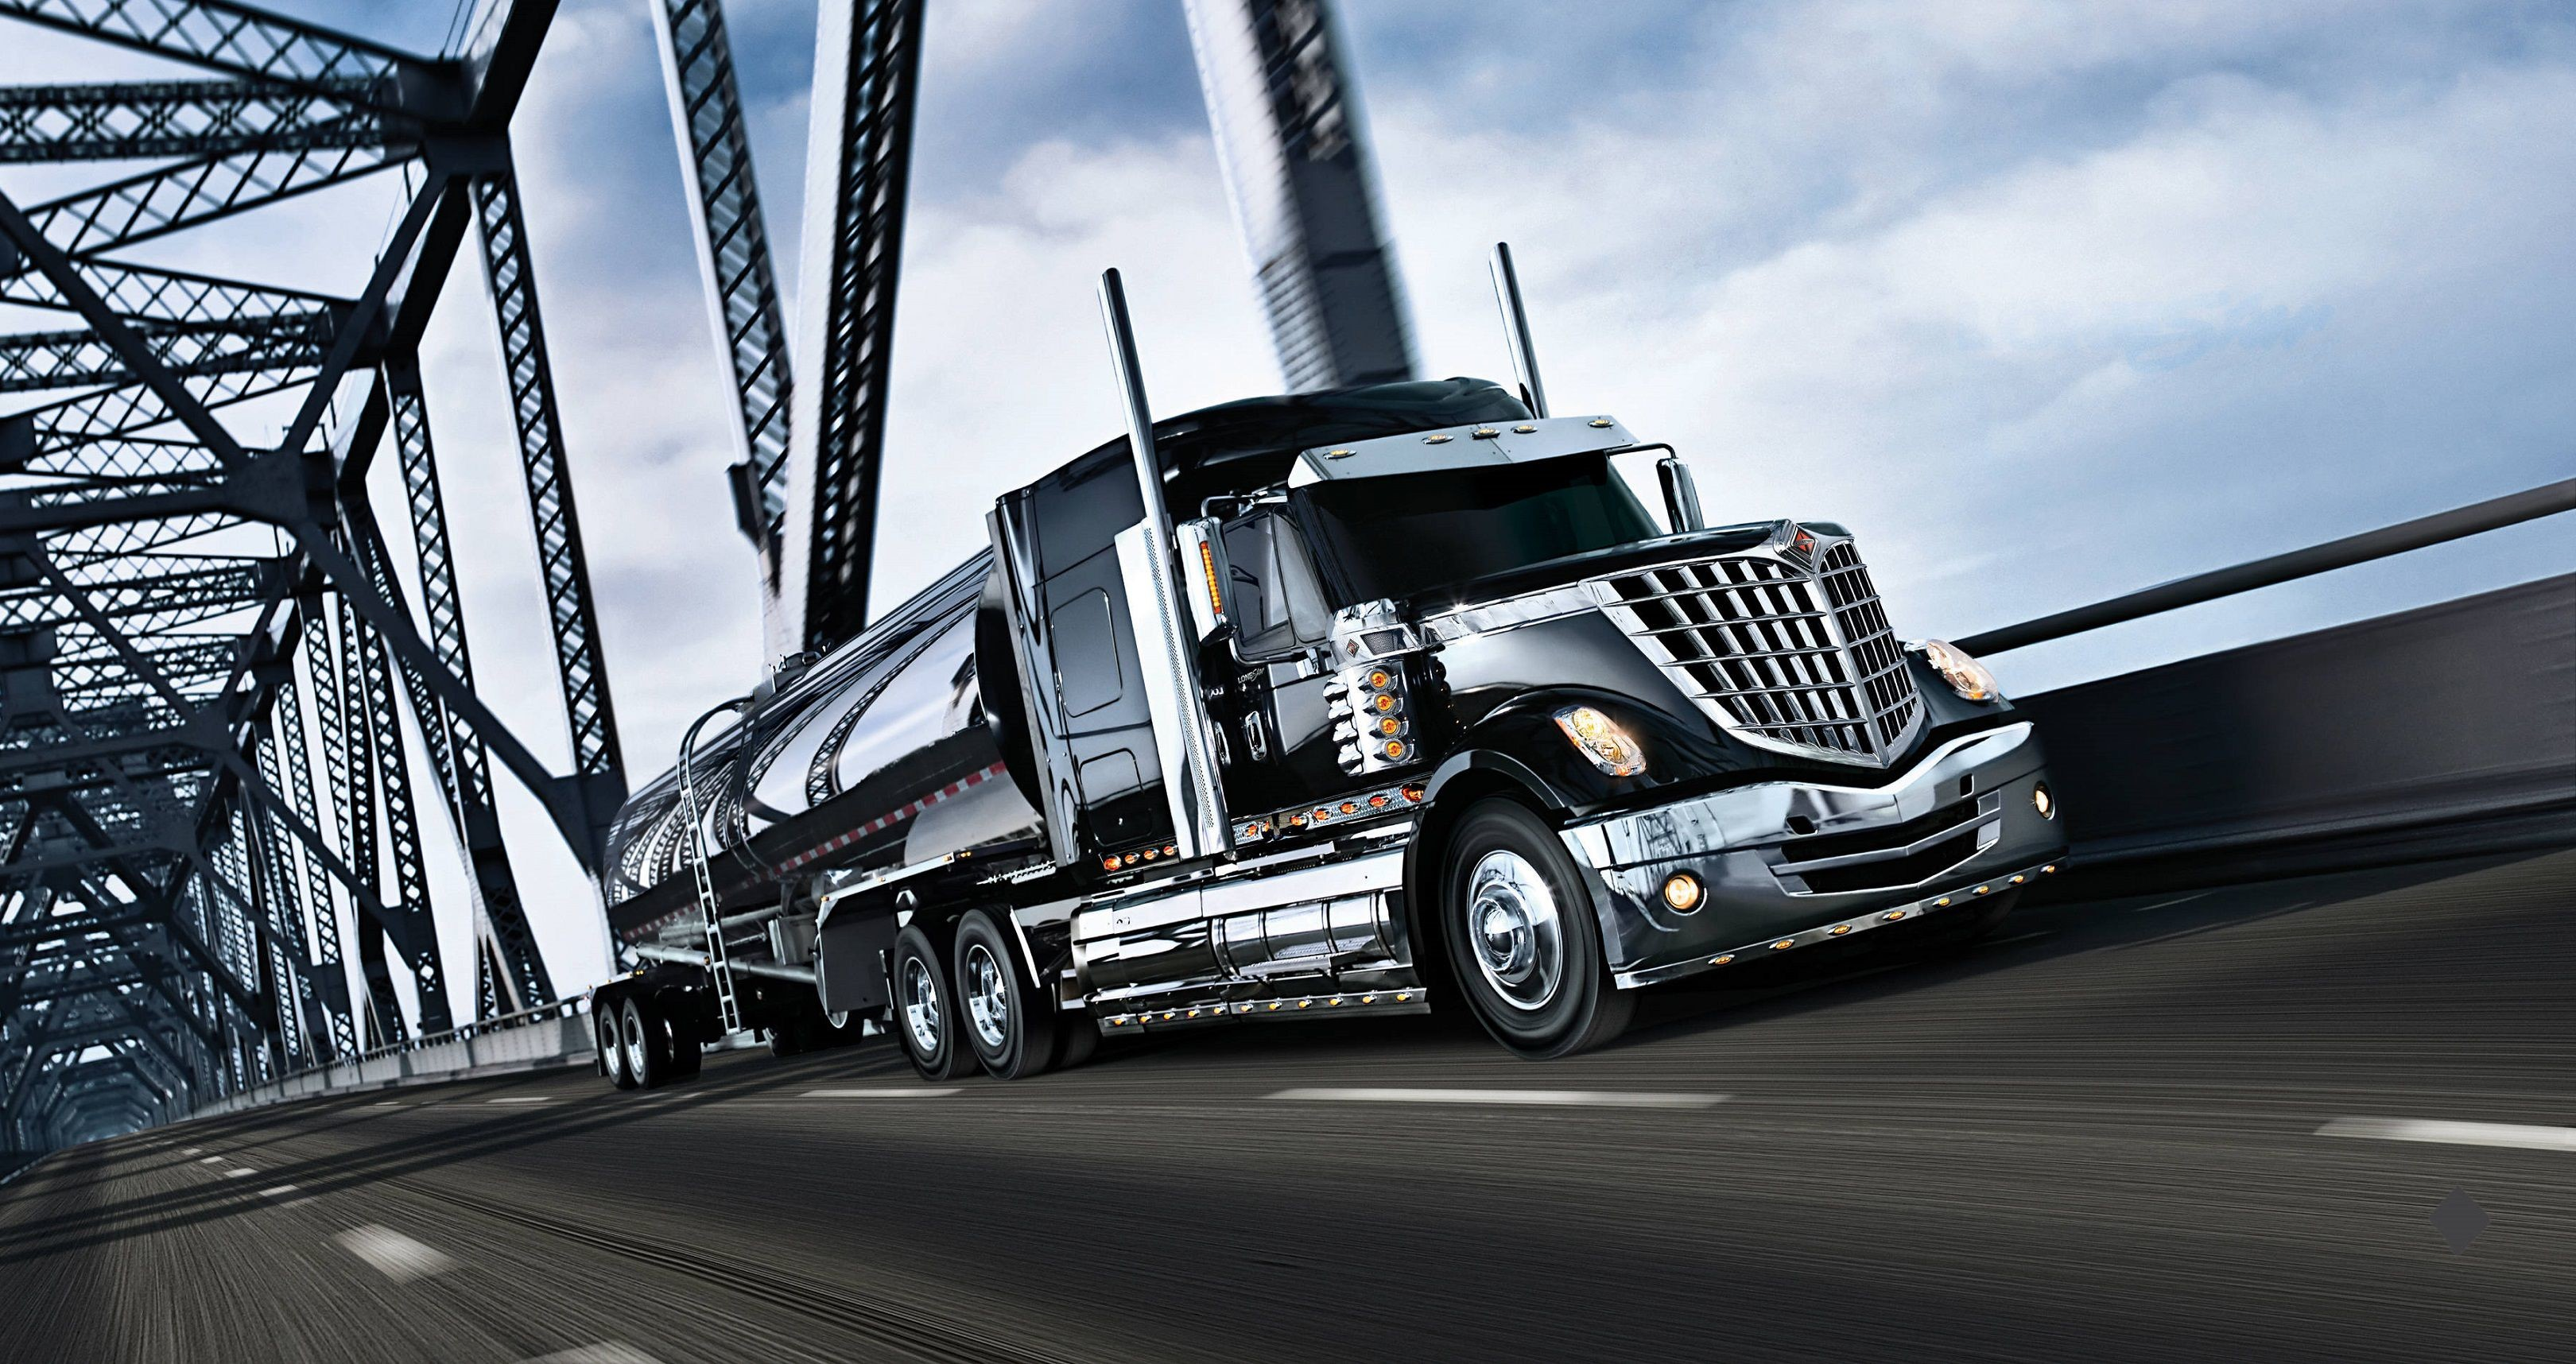 Truck Wallpapers High Resolution 58 Images